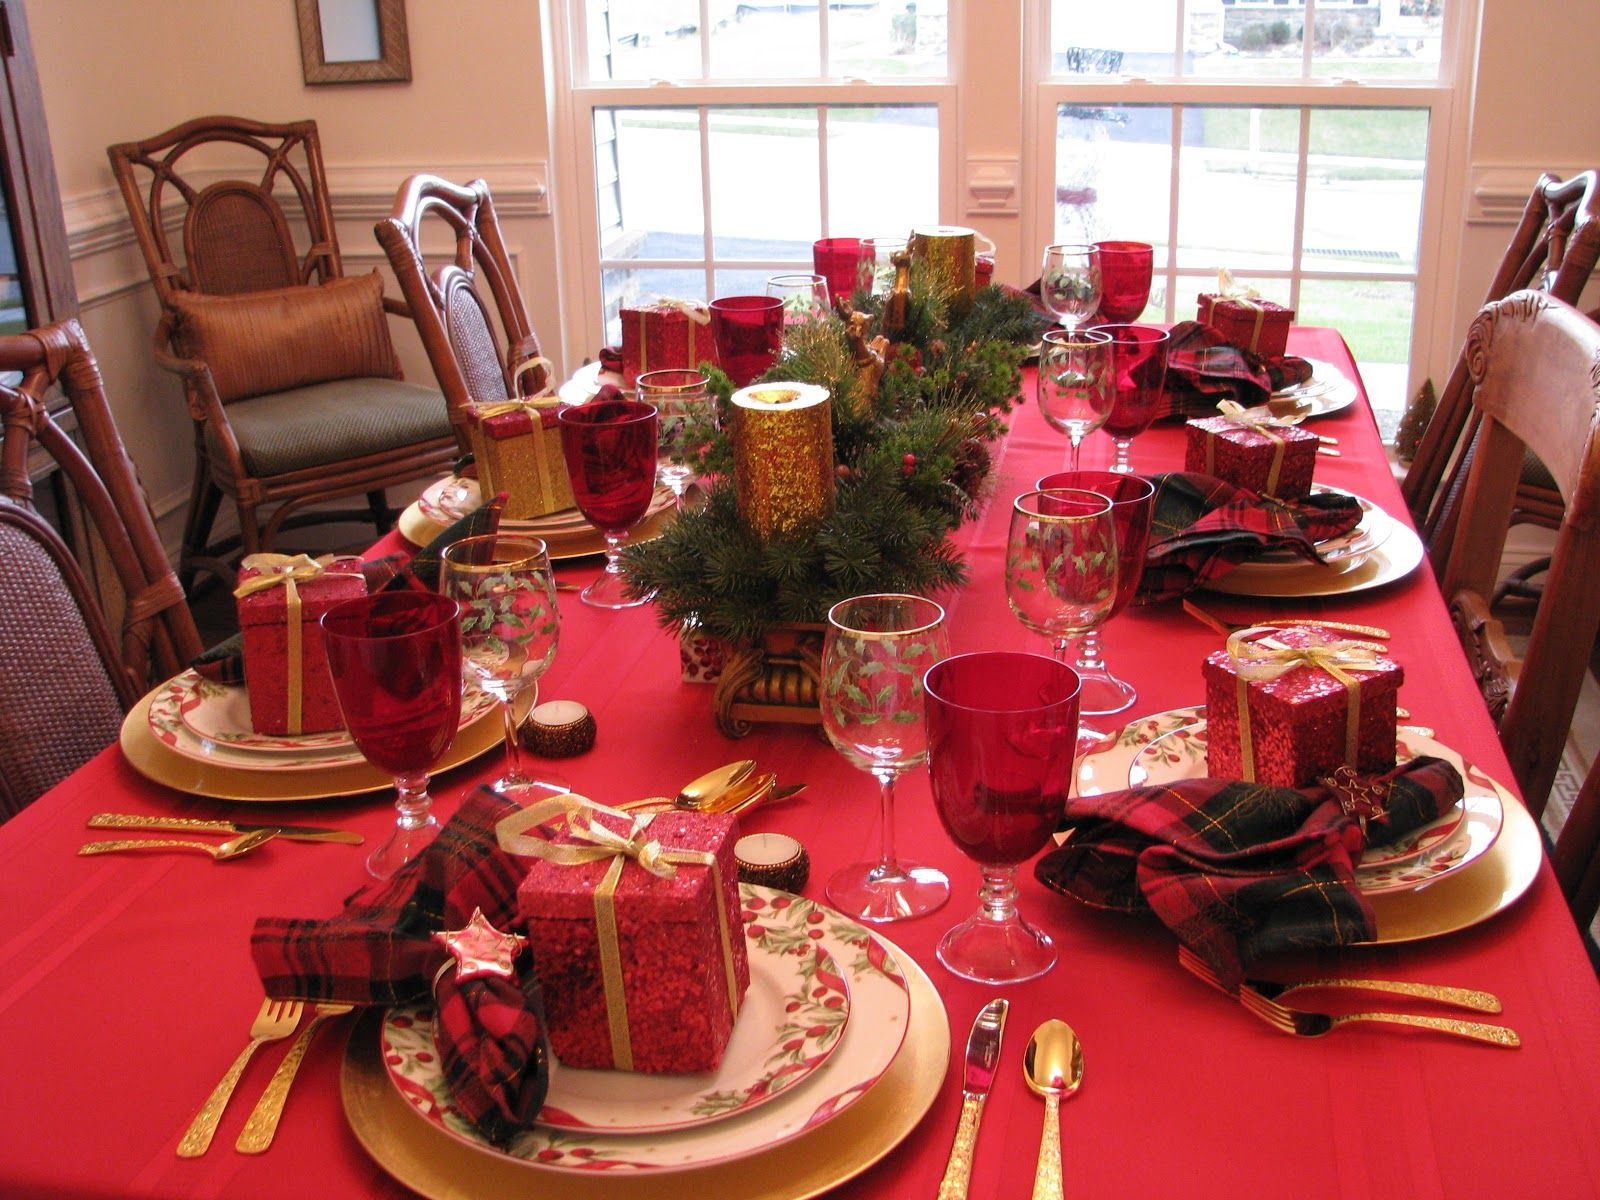 The Perfect Table Setting For Christmas Ideas Awesome 5576 %c3%a2%c2%